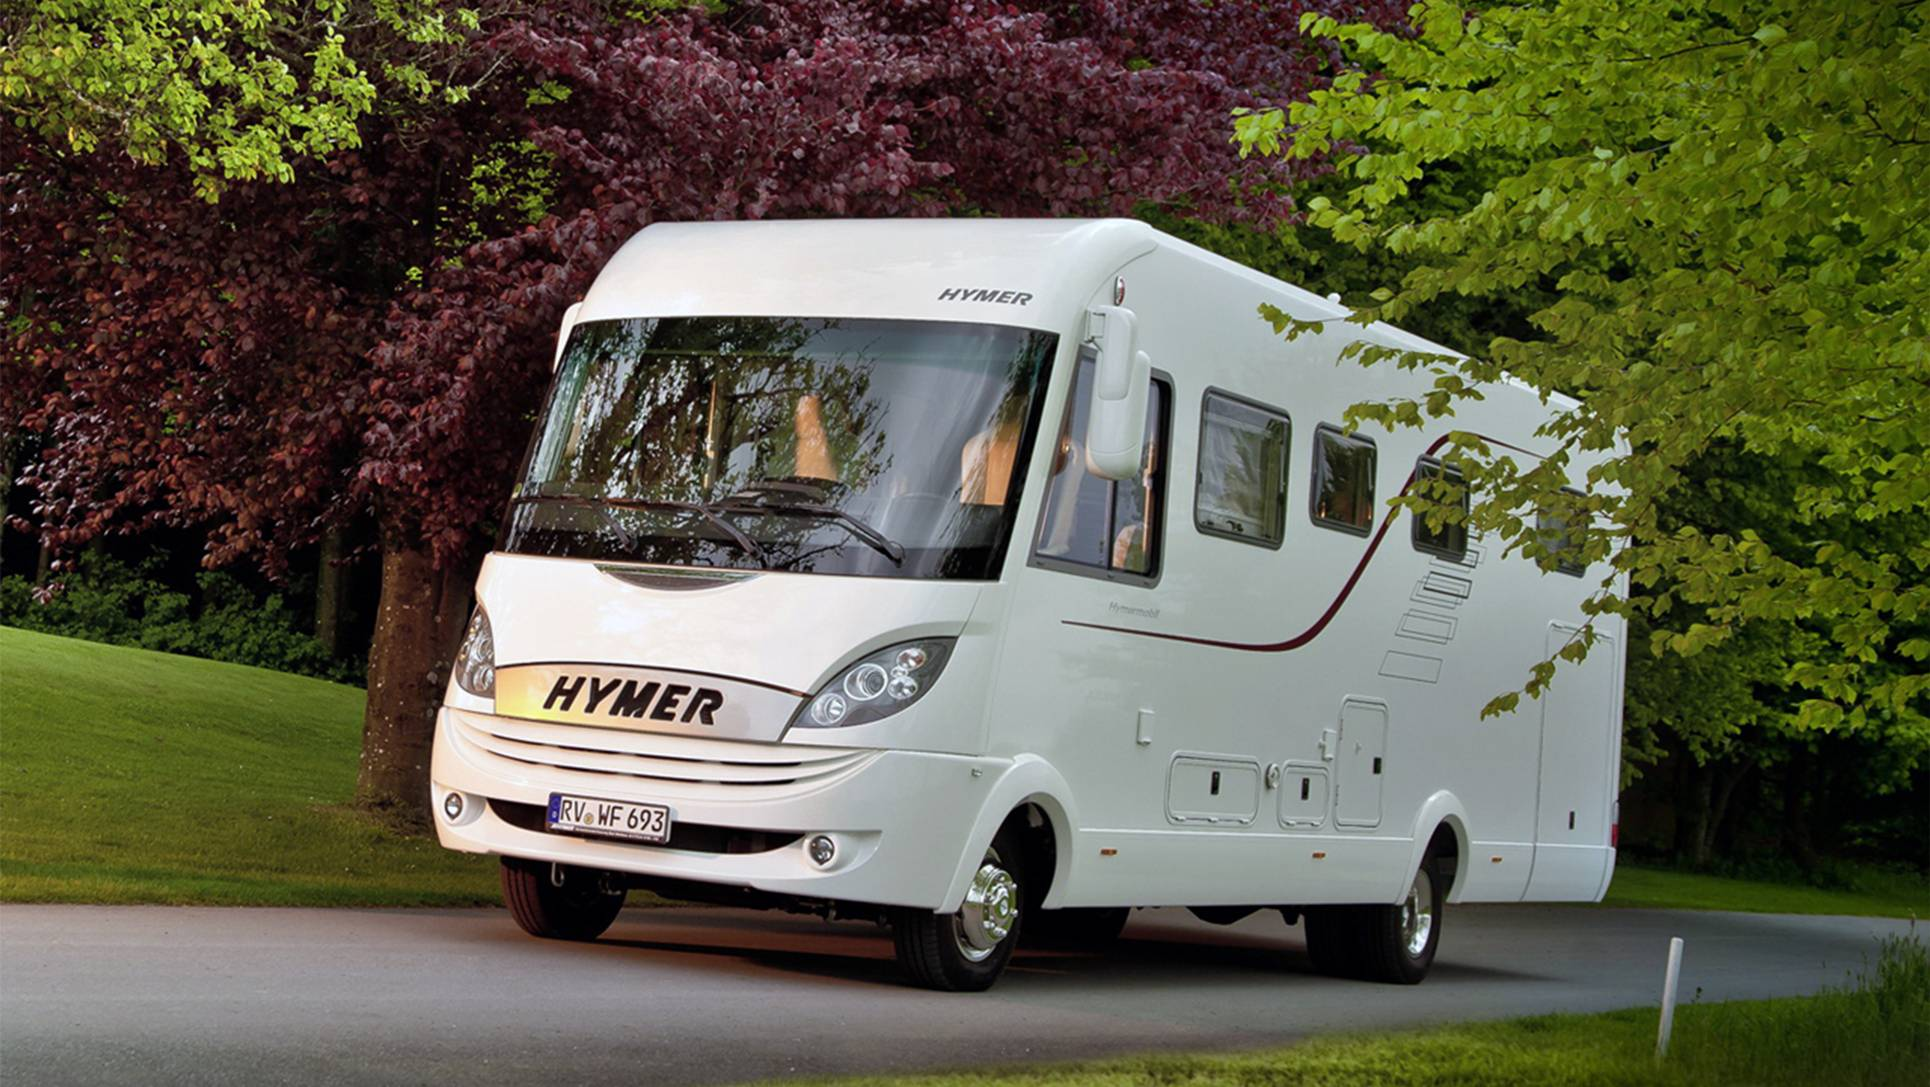 Hymer Liner MJ-09 weiss FP 01